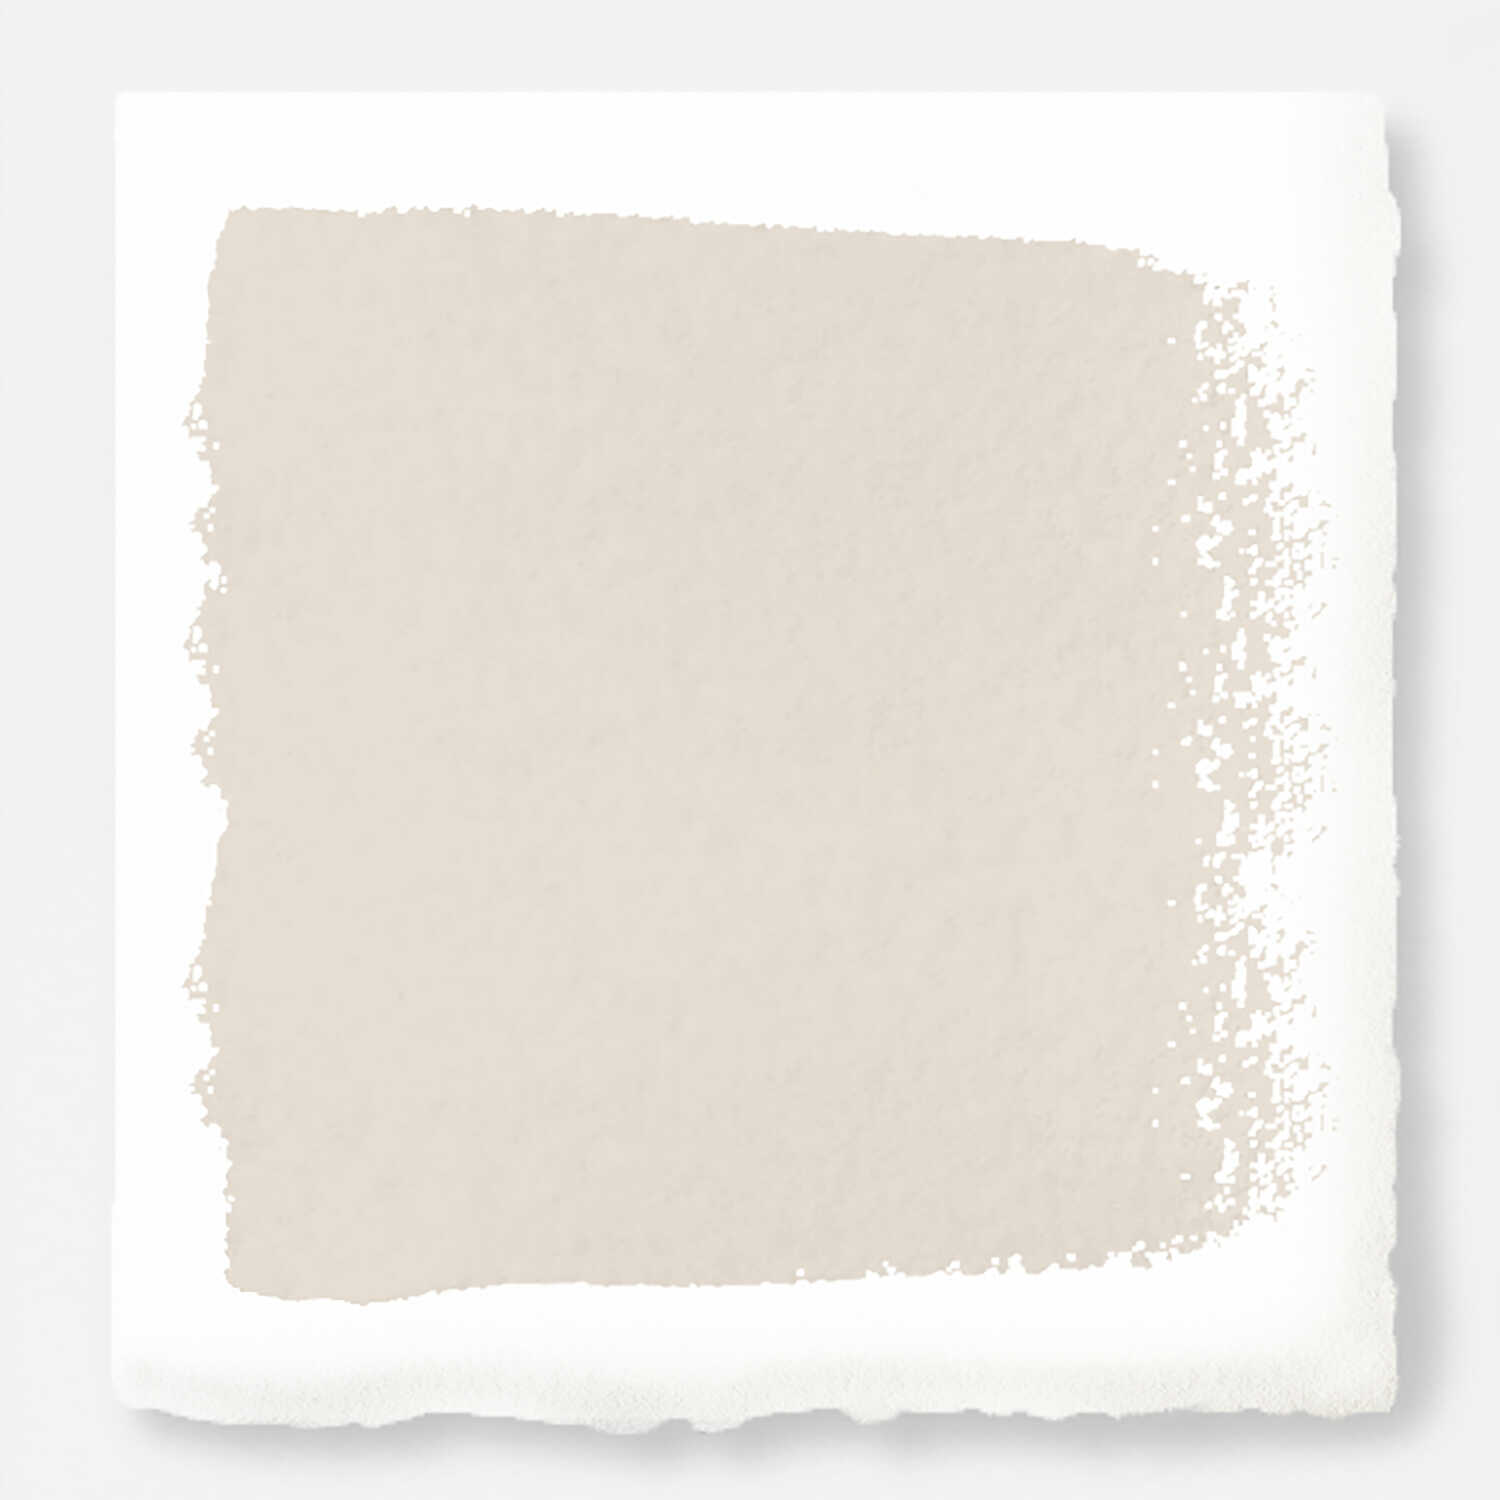 Magnolia Home  Semi-Gloss  Soft Linen  Exterior Paint and Primer  1 gal.